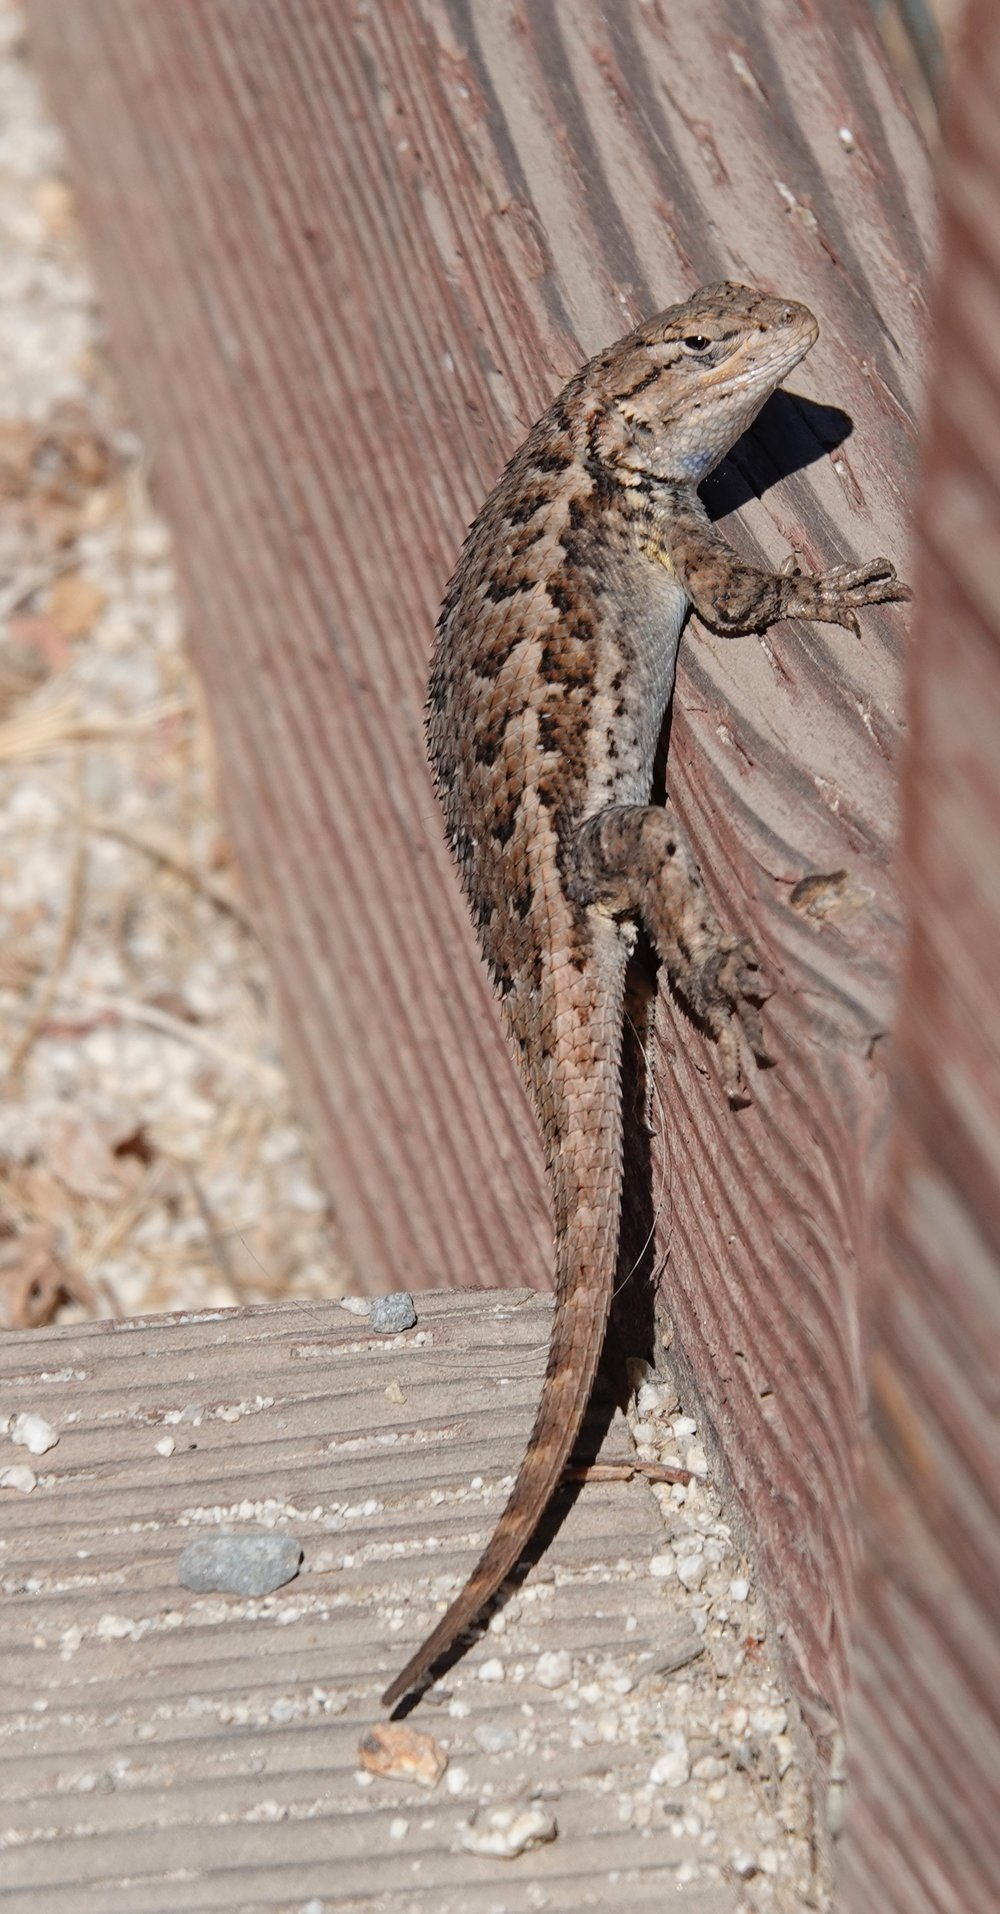 I encountered this western fence lizard on a fence in Napa, California.